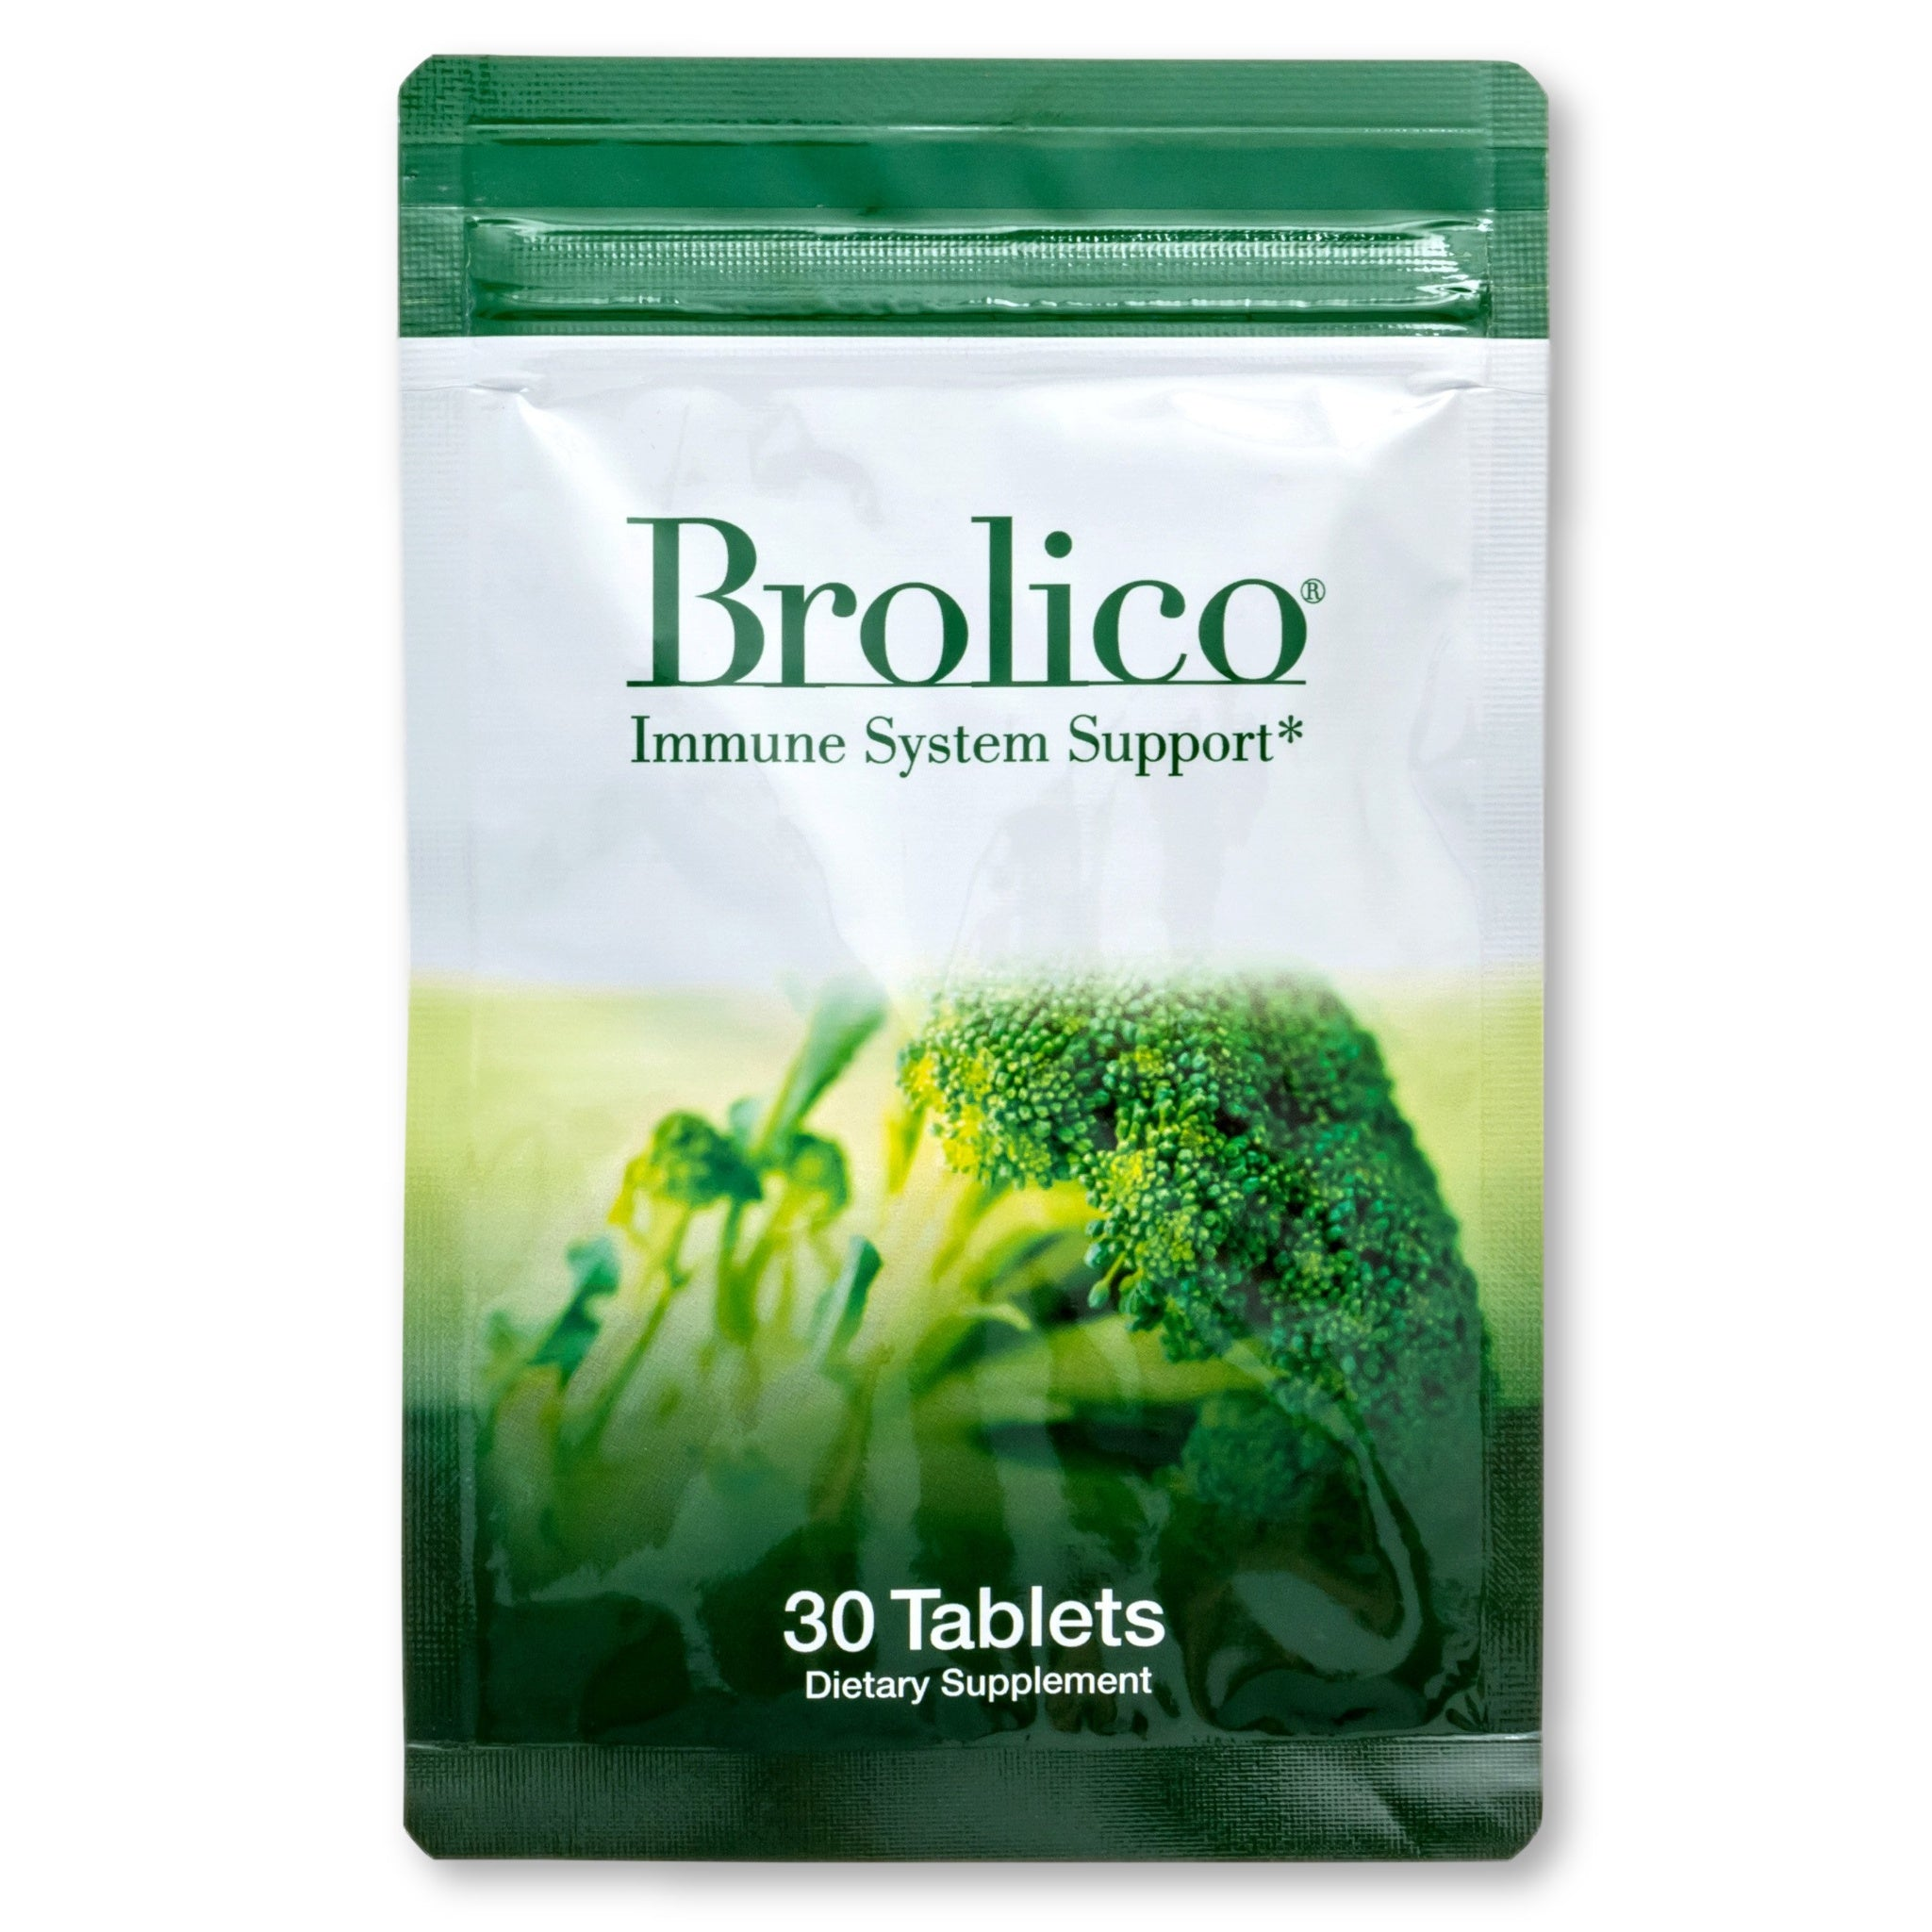 Brolico® 10 Day Sample Pack